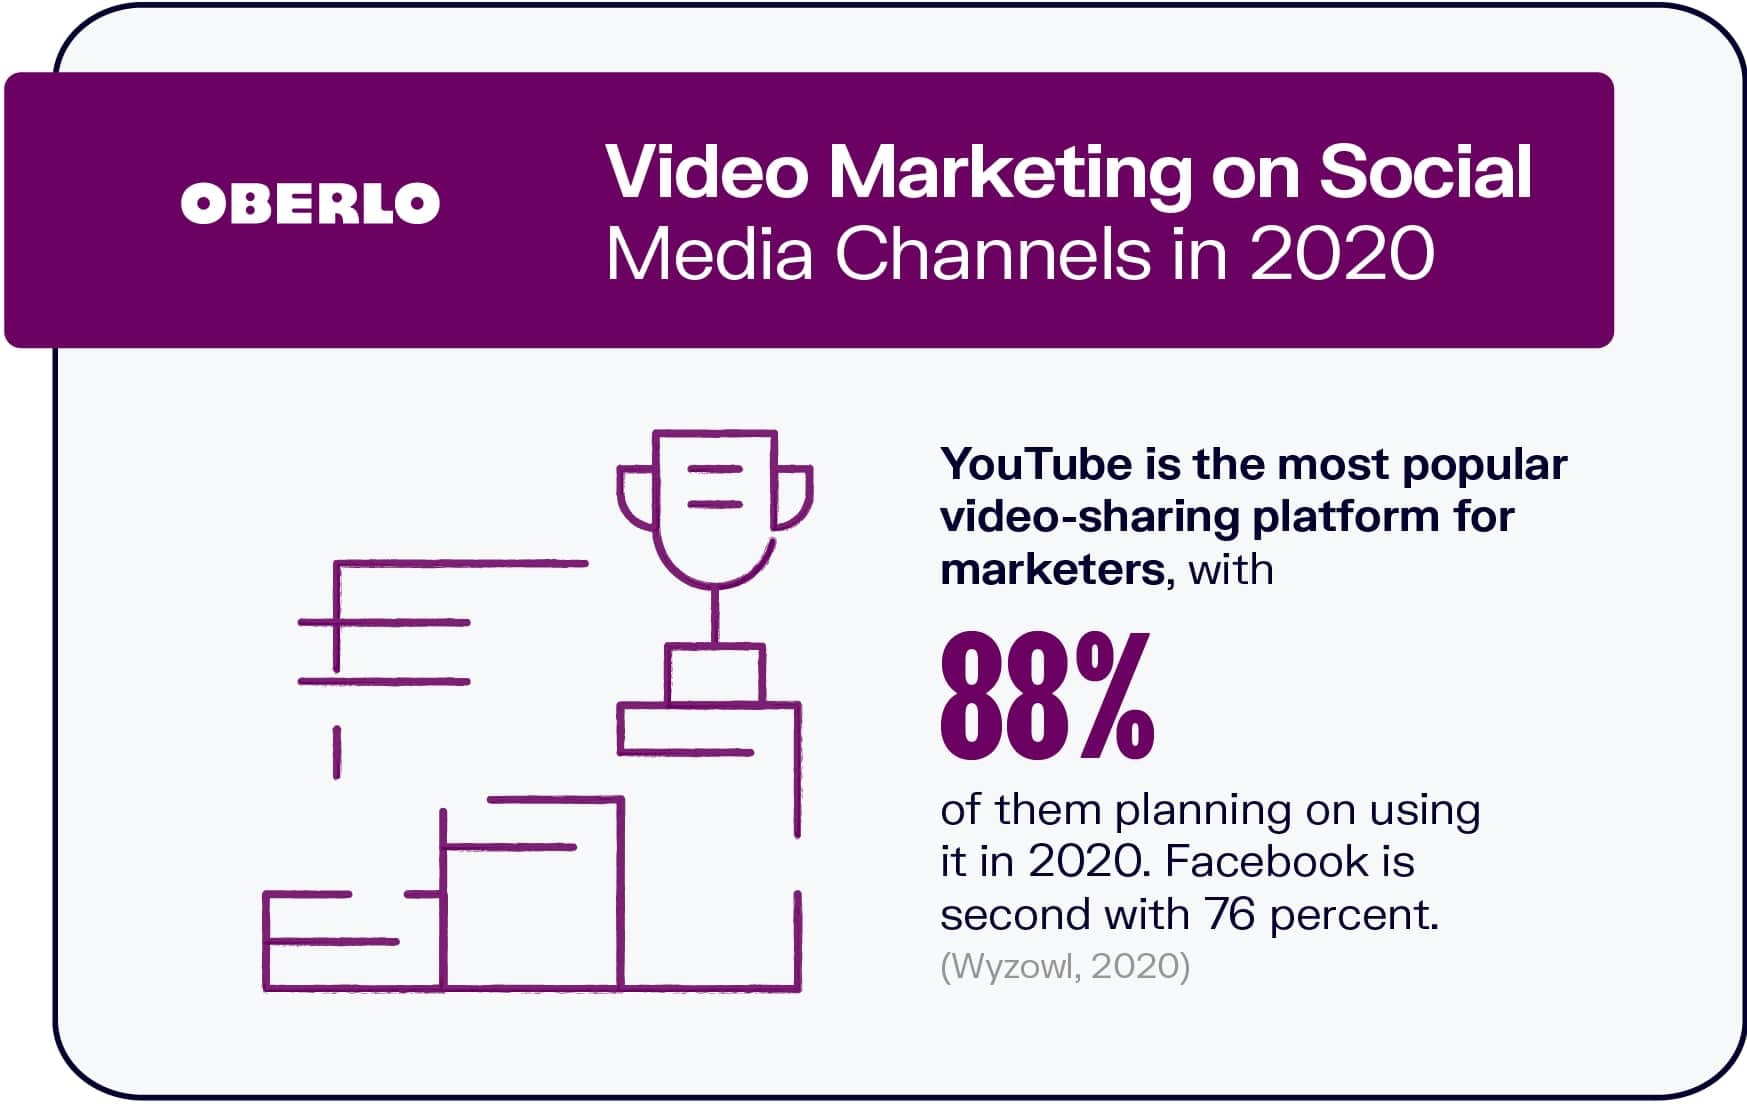 Video Marketing on Social Media Channels in 2020